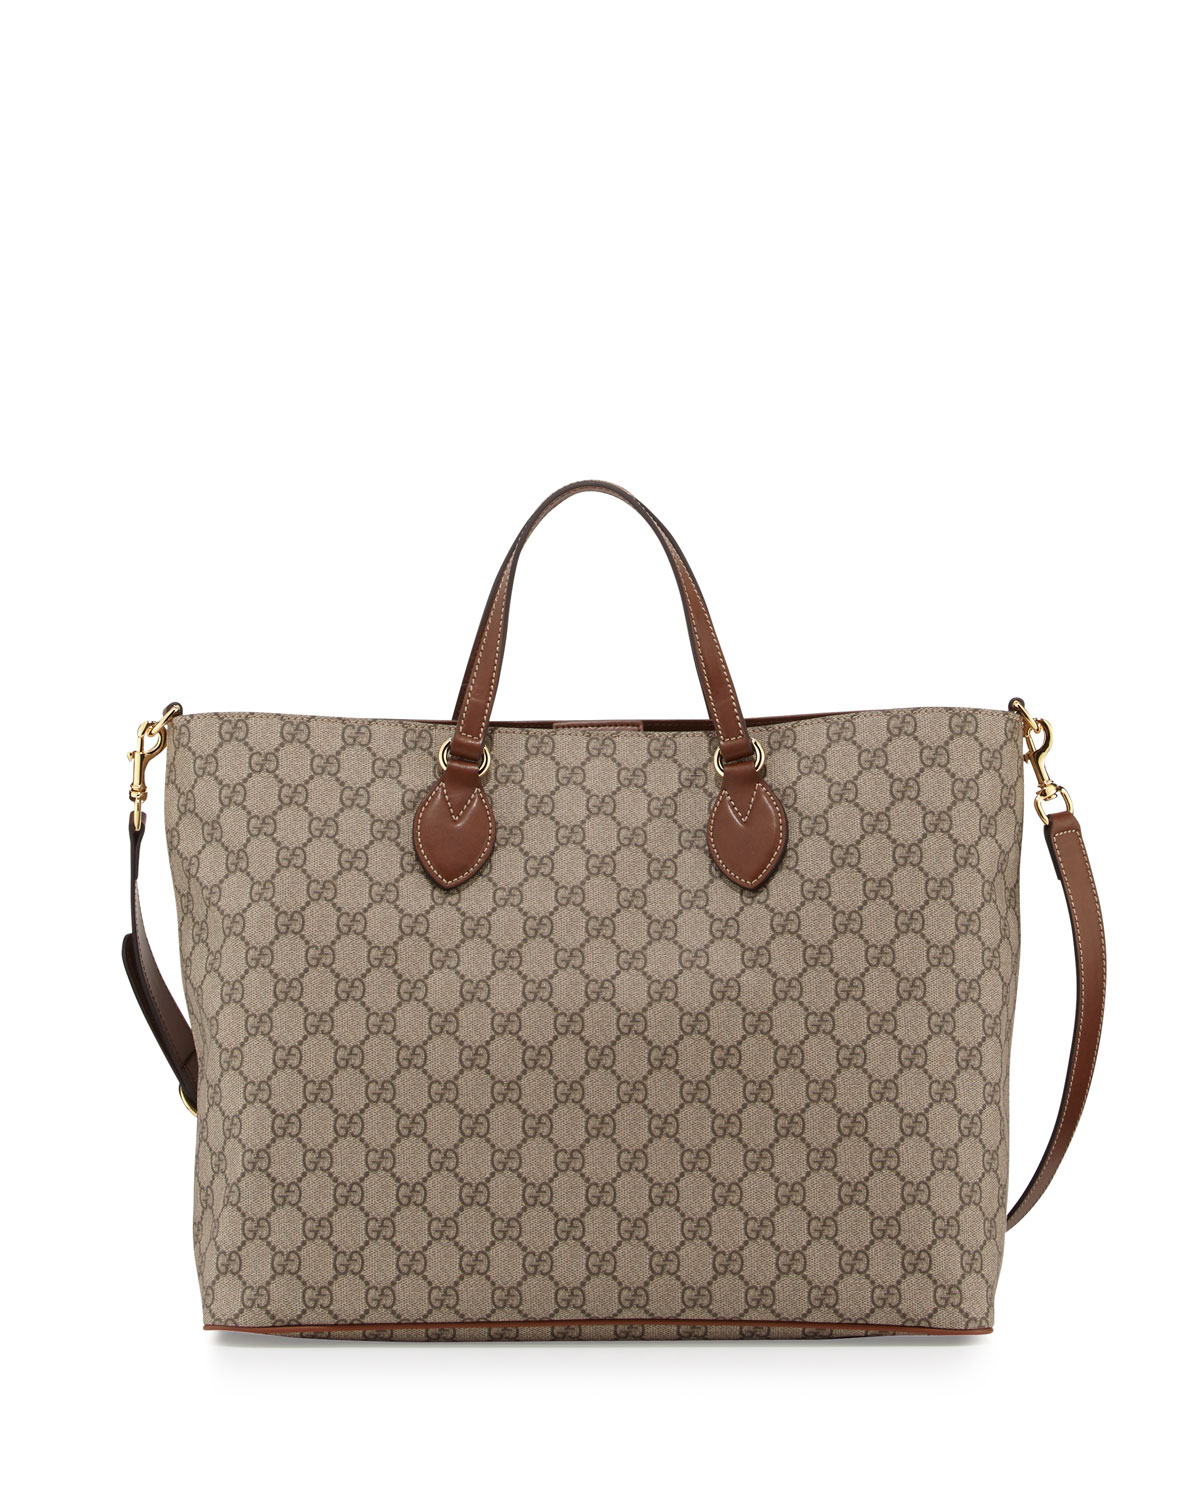 Gucci GG Supreme Top-Handle Tote Bag, Tan   Neiman Marcus a7eb8f3480